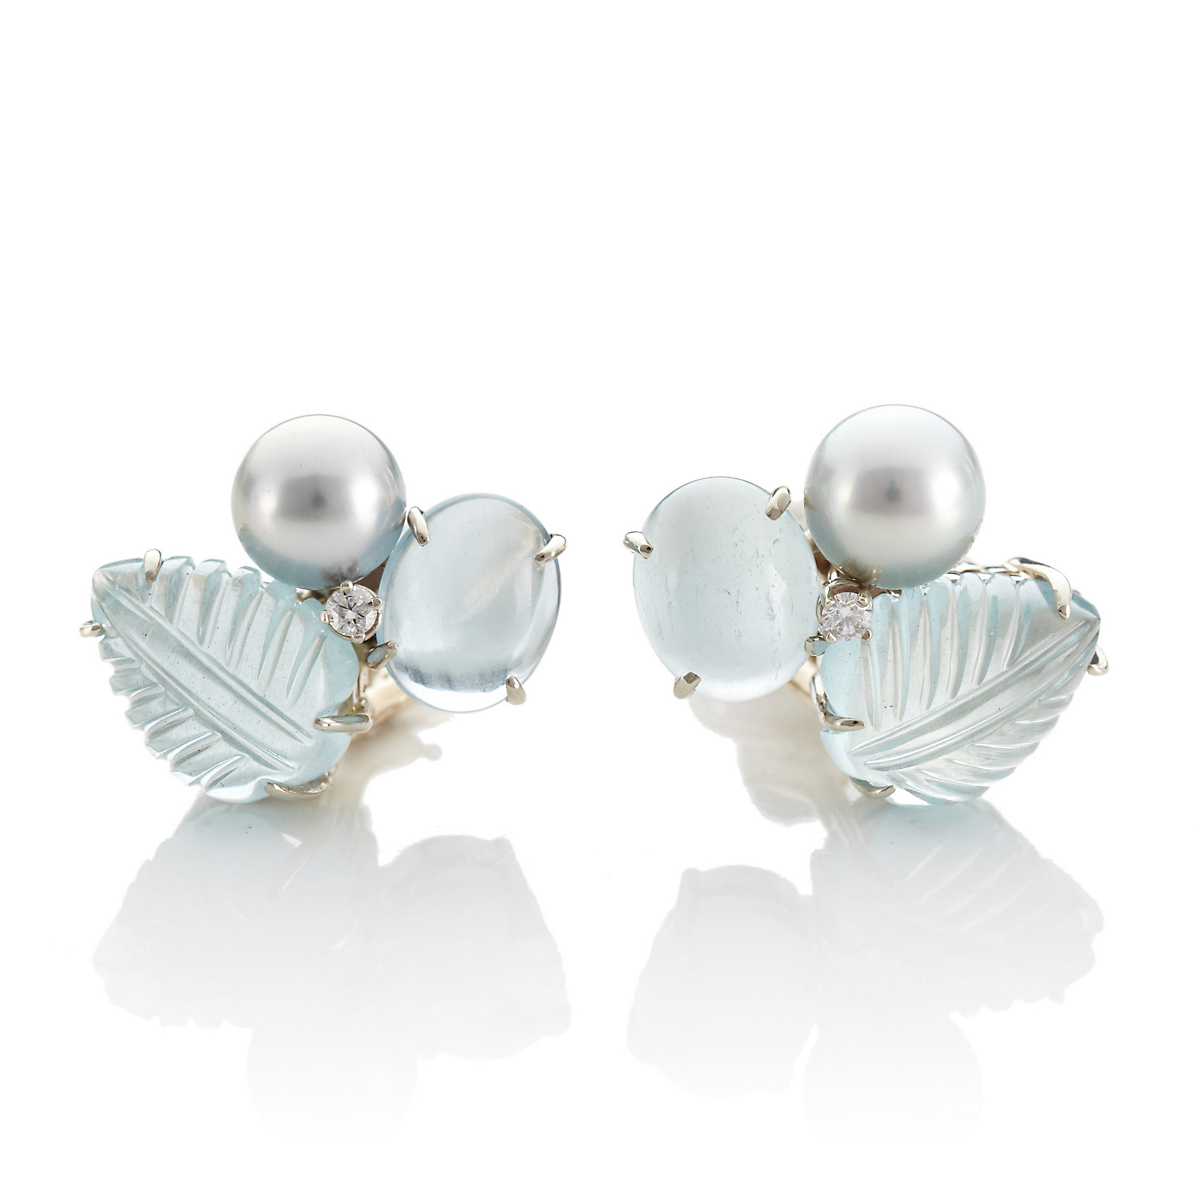 Gump's Carved Aquamarine with Silver Tahitian Cultured Pearl Earrings